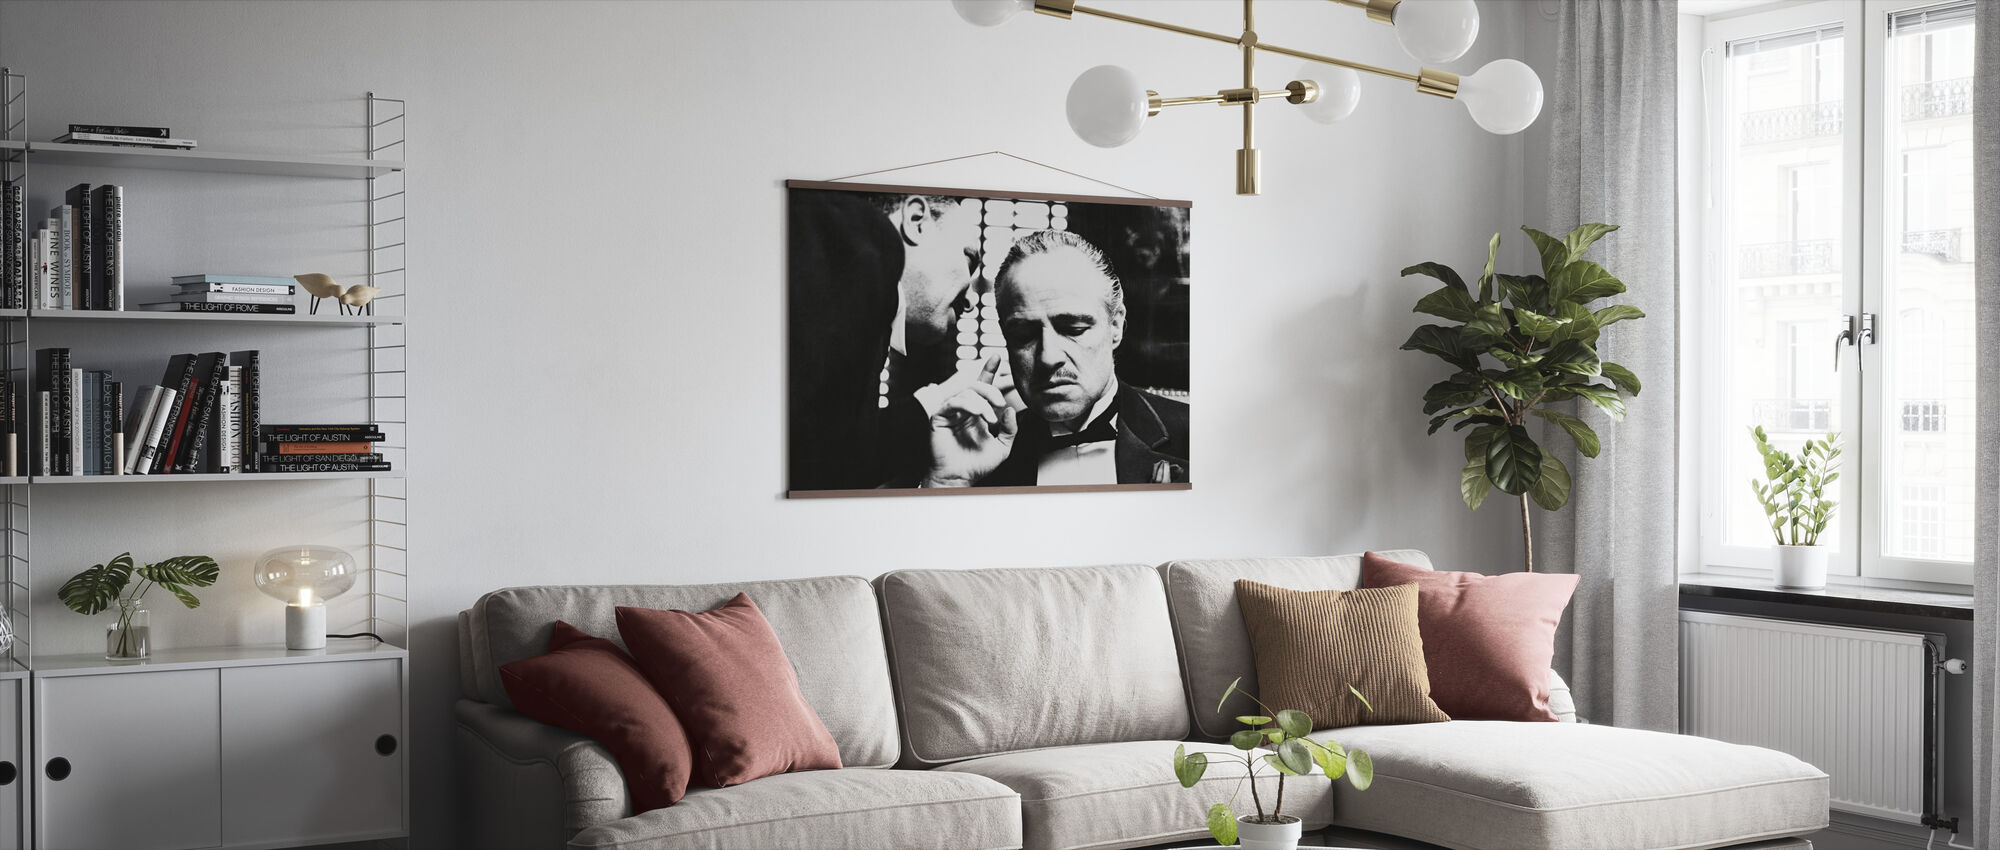 Marlon Brando i Godfather - Plakat - Stue